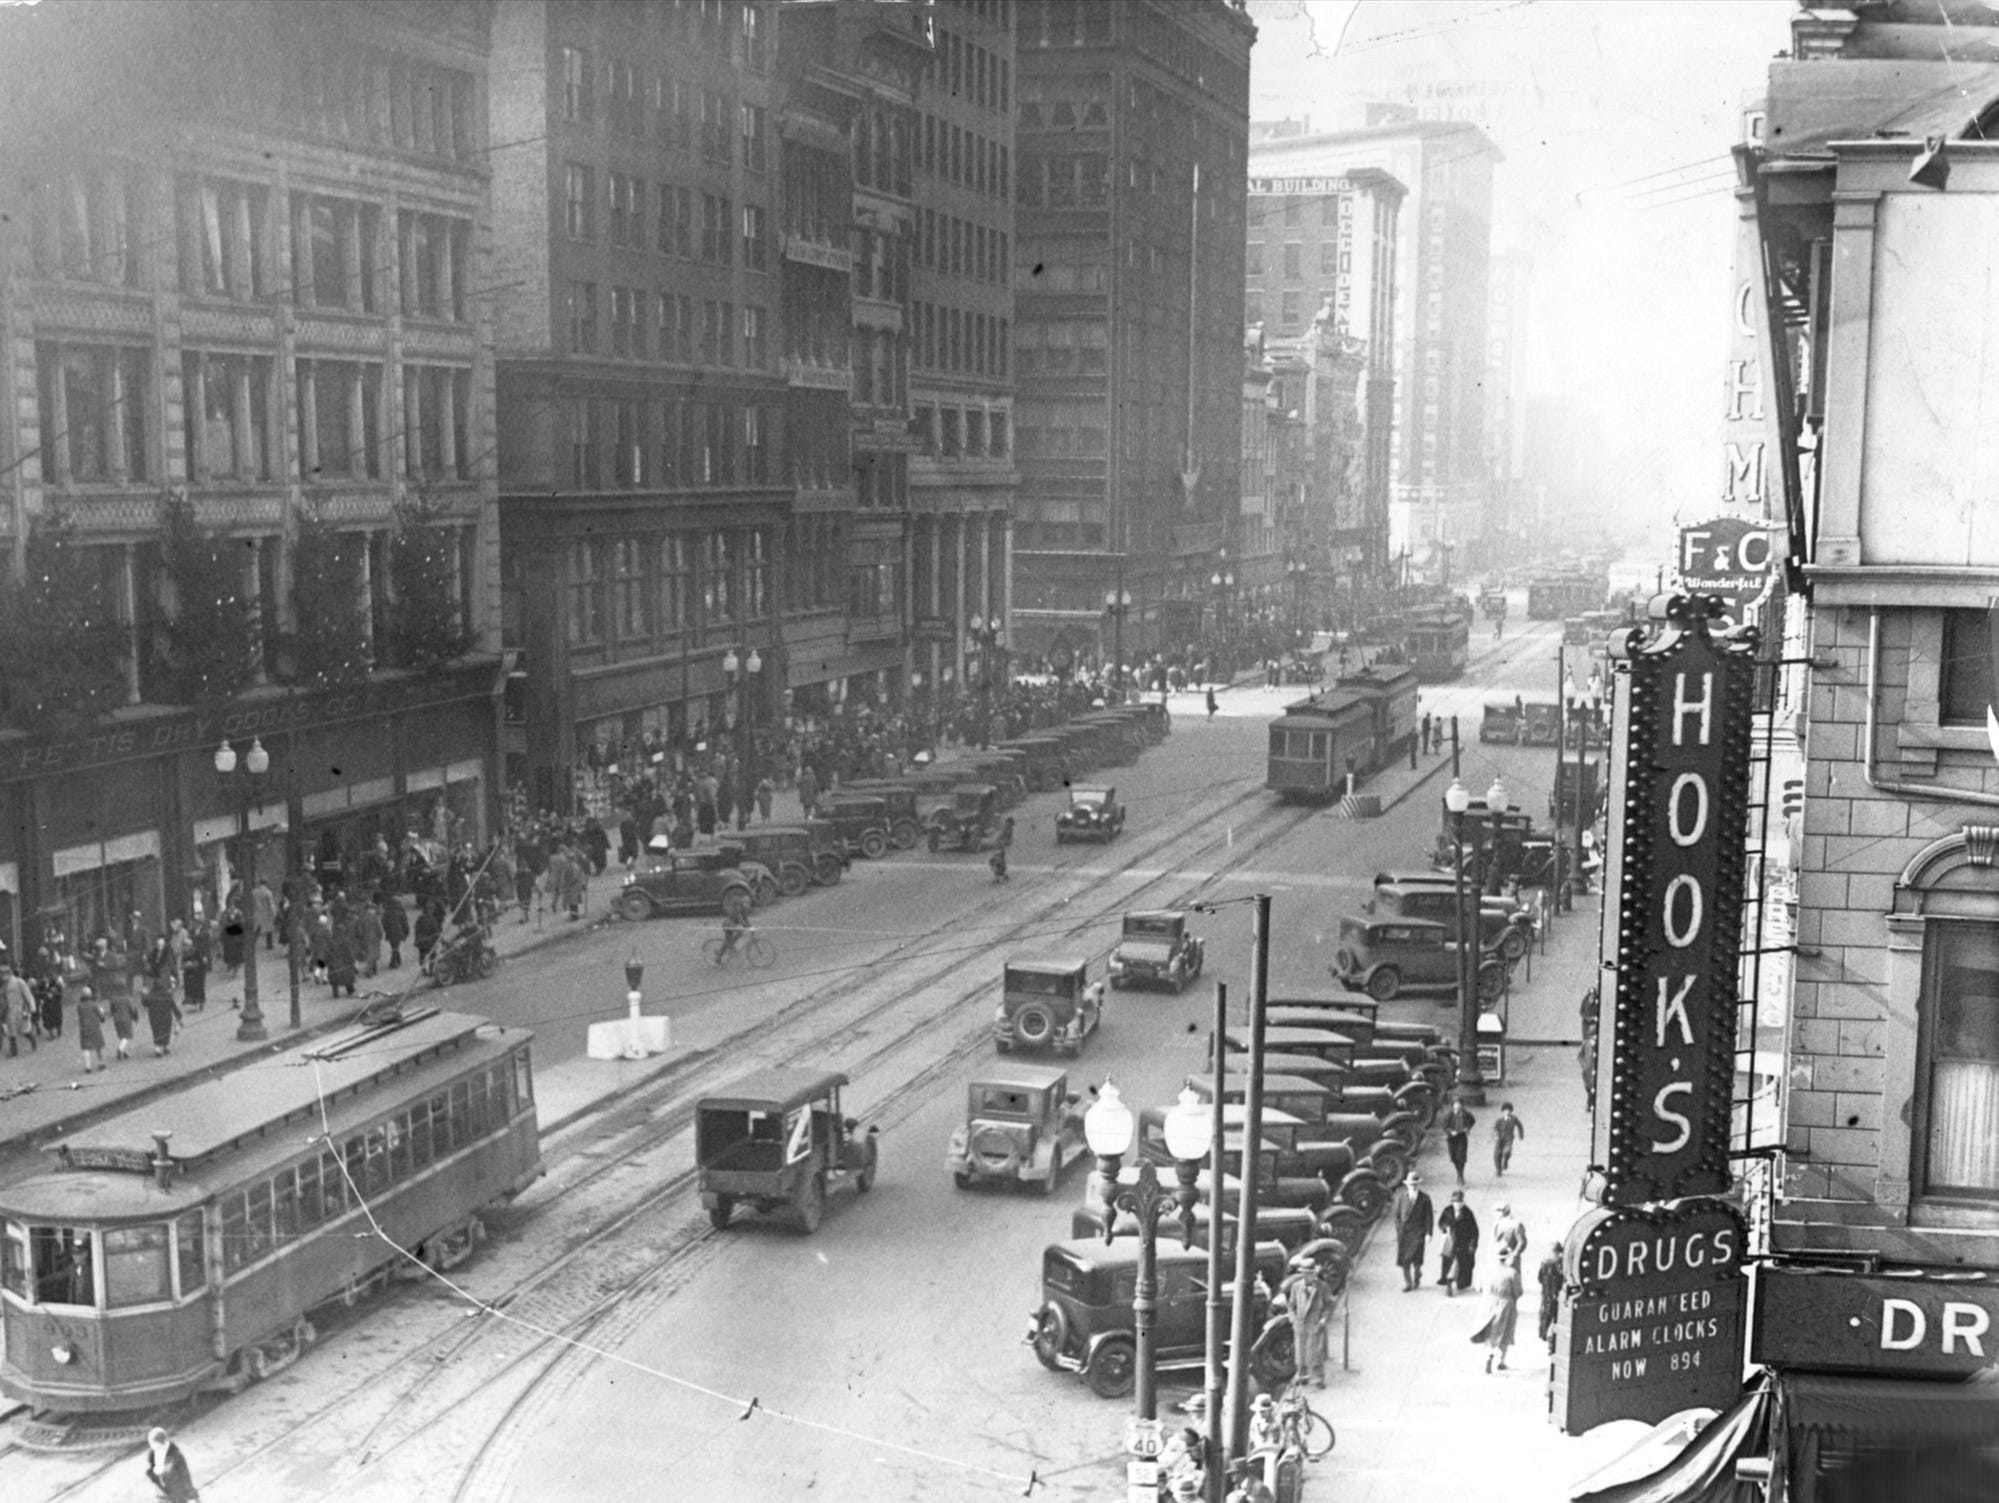 Washington Street, looking west from Pennsylvania Street in December 1928, showed one of the principal avenues of business and traffic in the city.